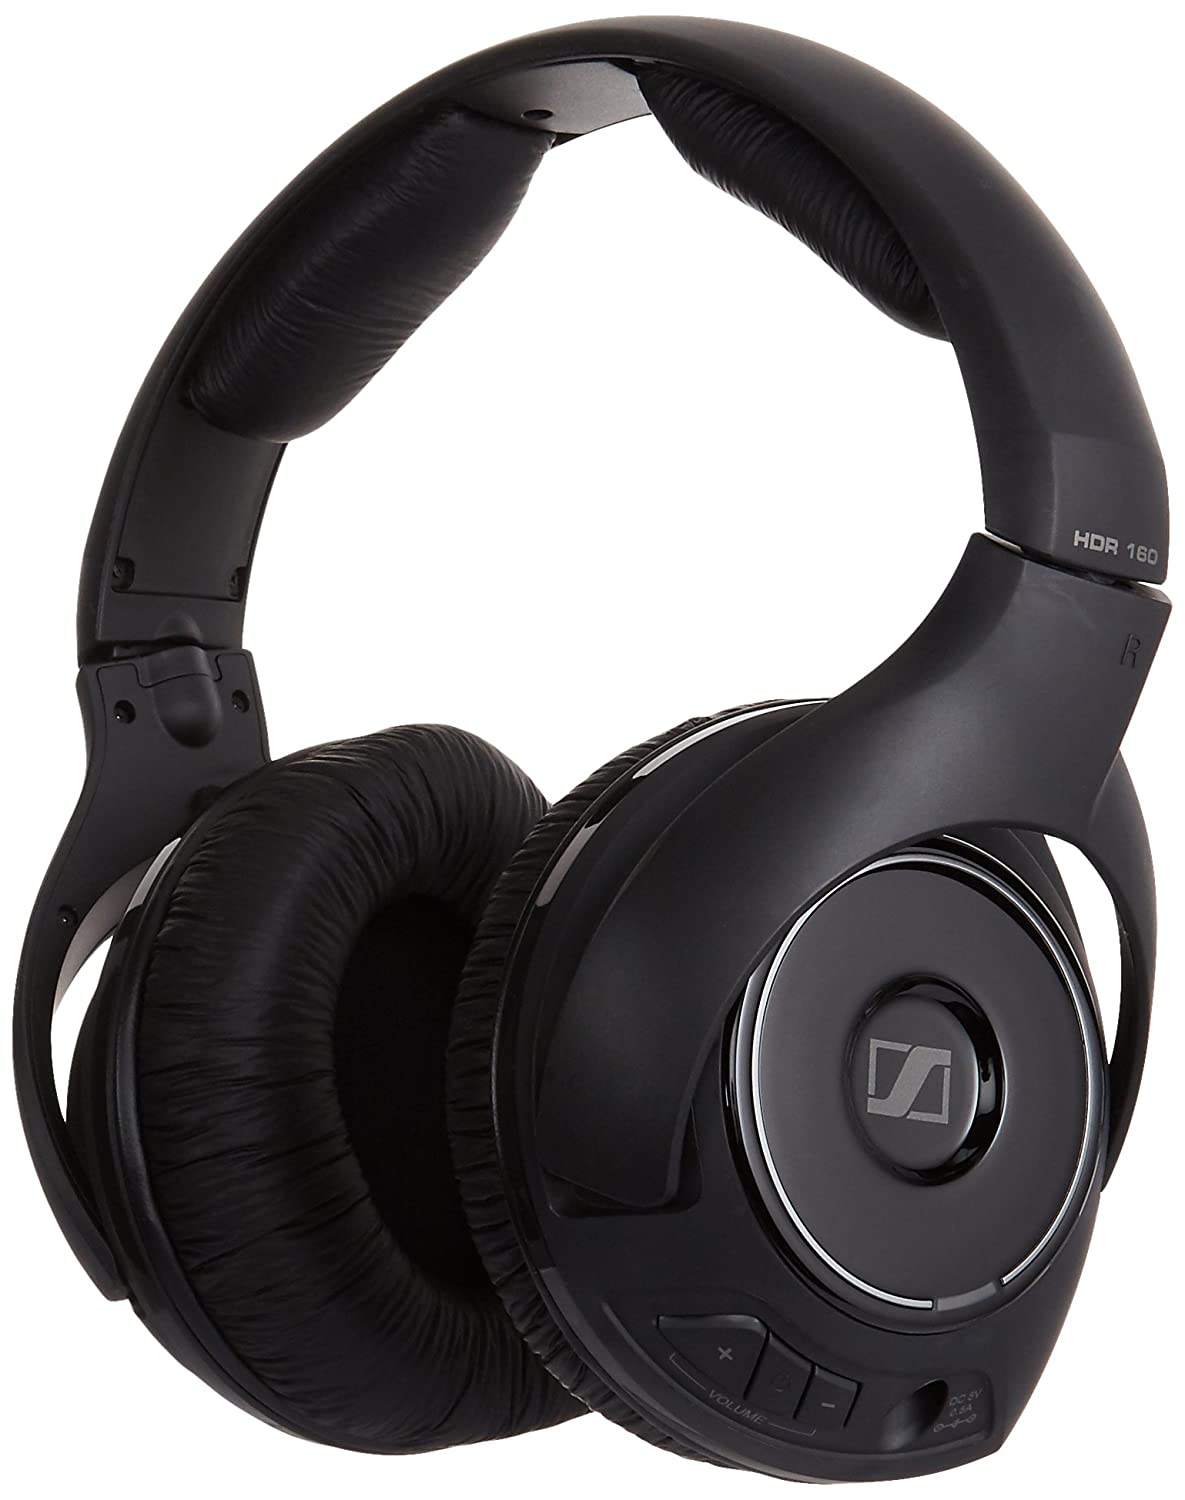 9dea5546684 Amazon.com: Sennheiser HDR 160 Headphone (Discontinued by Manufacturer):  Home Audio & Theater